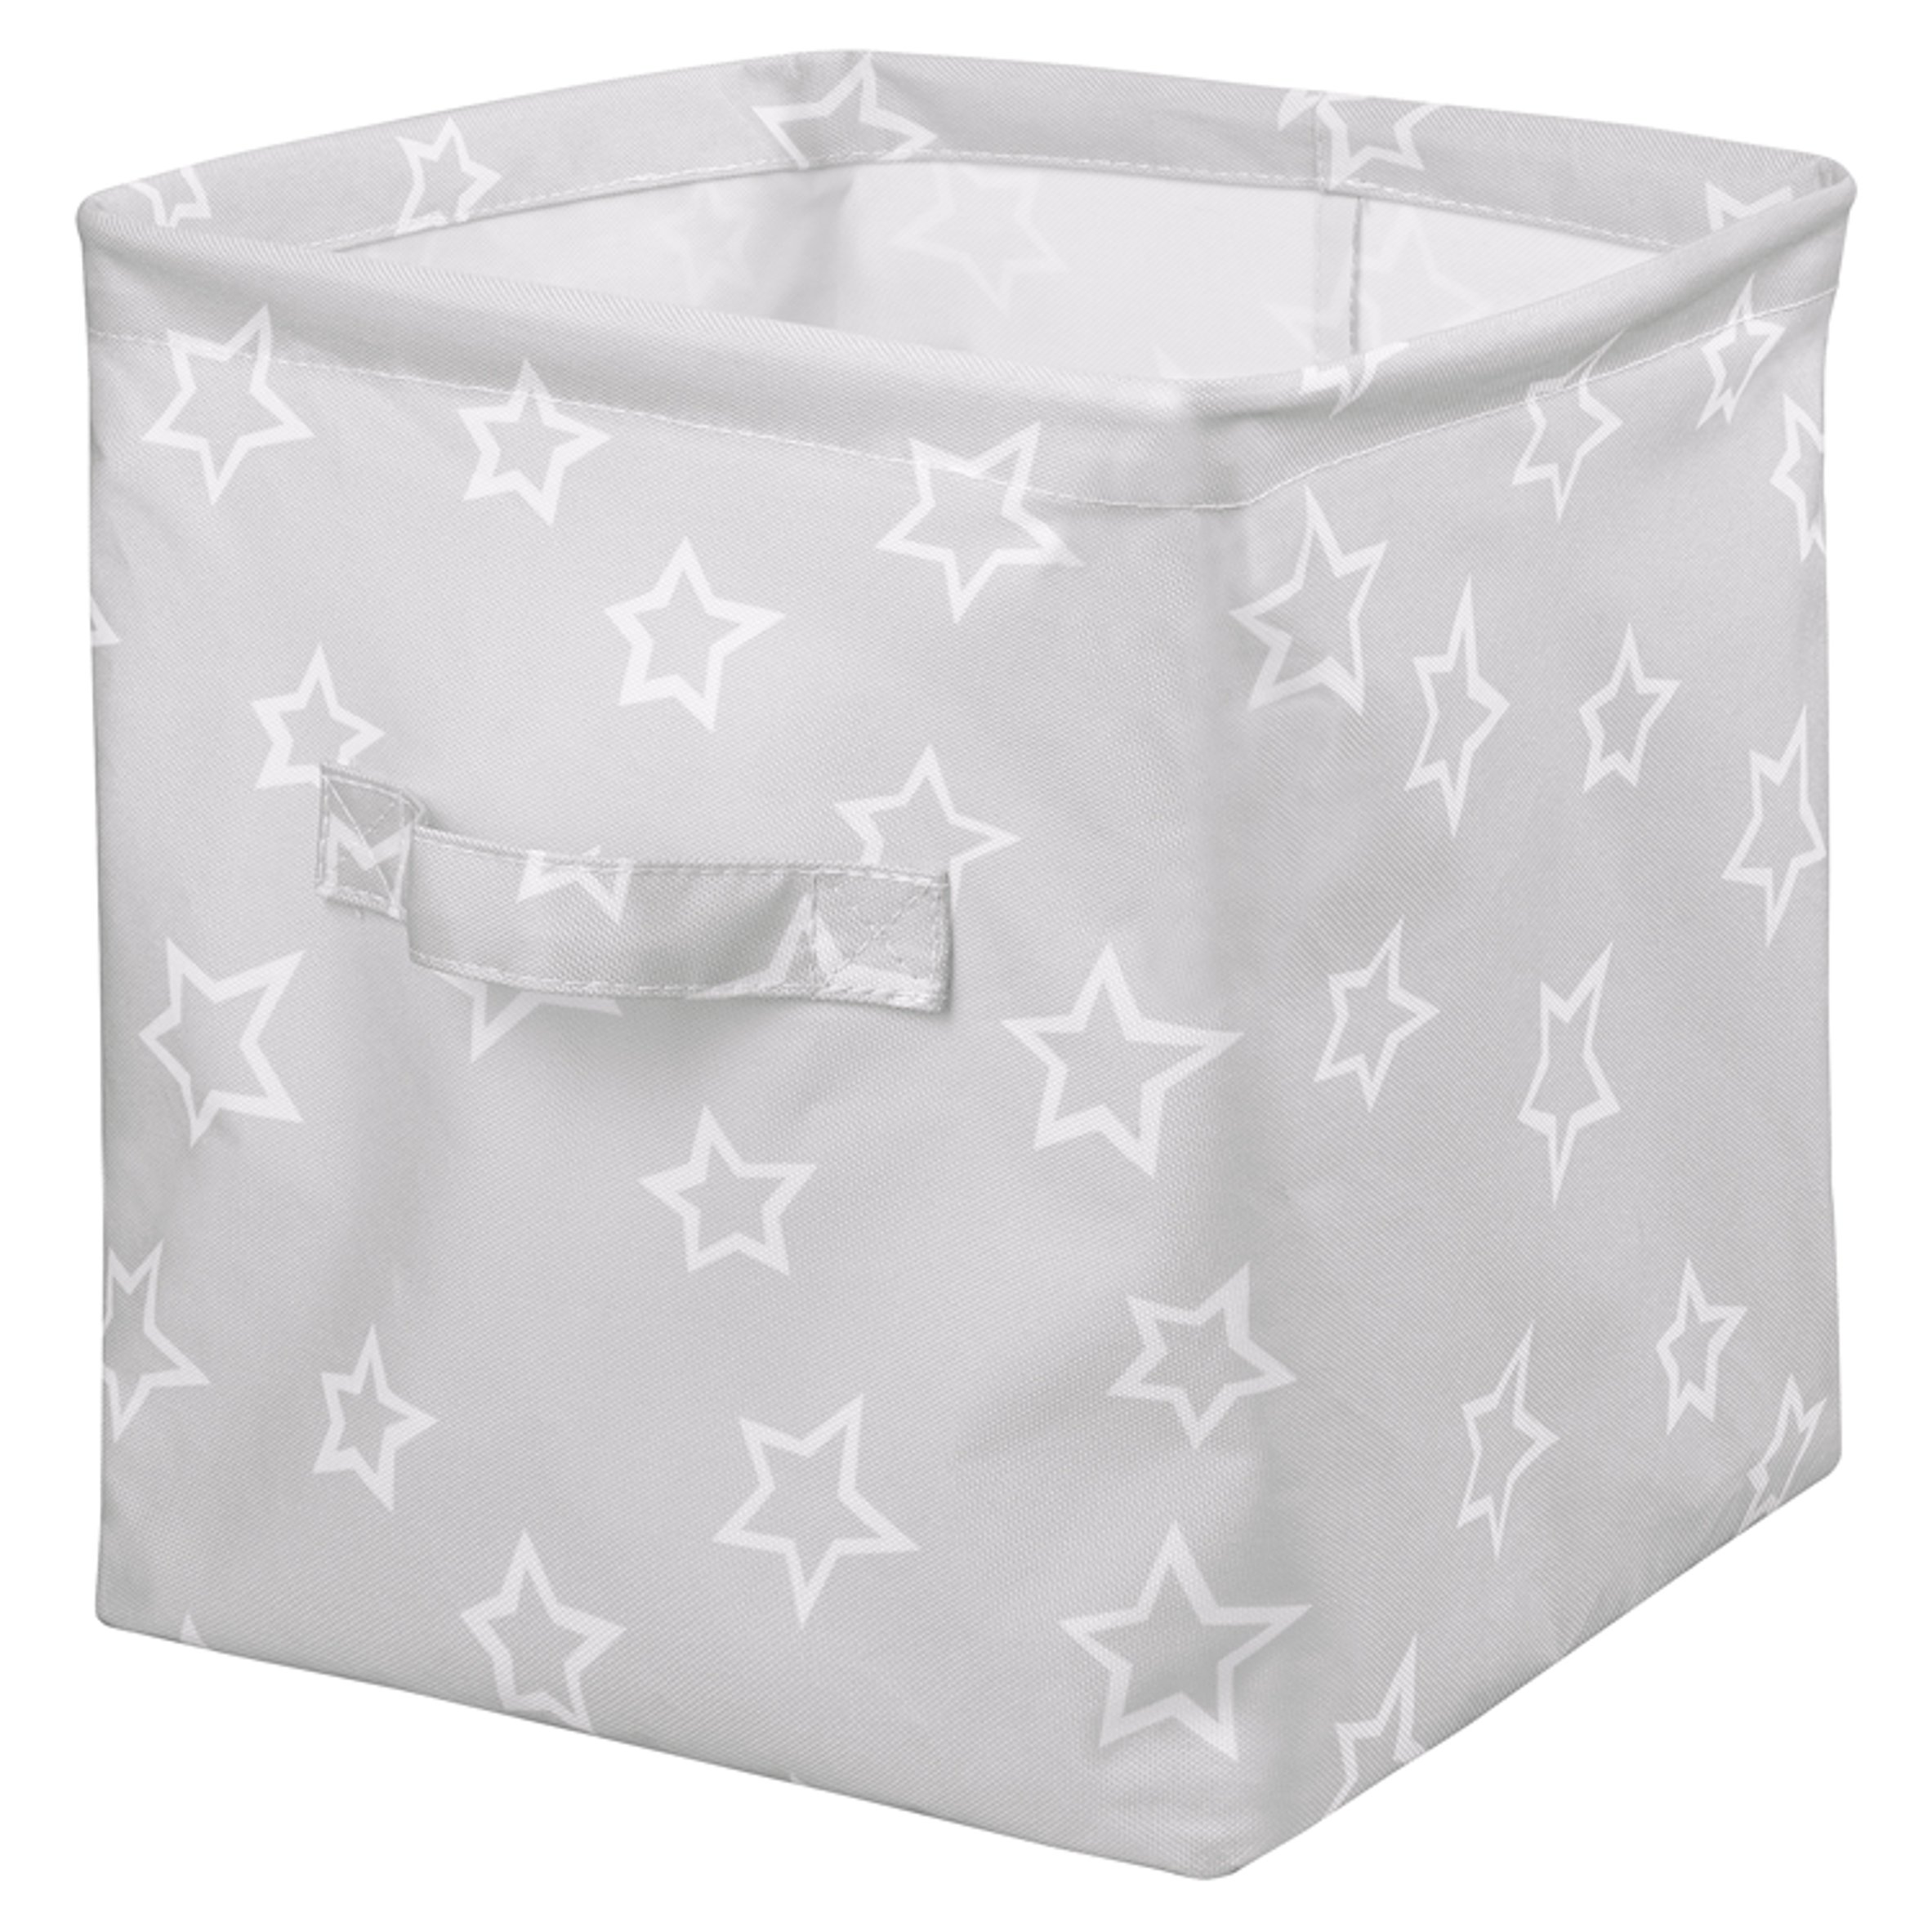 Fred & Flo Grey Star Small Storage Box